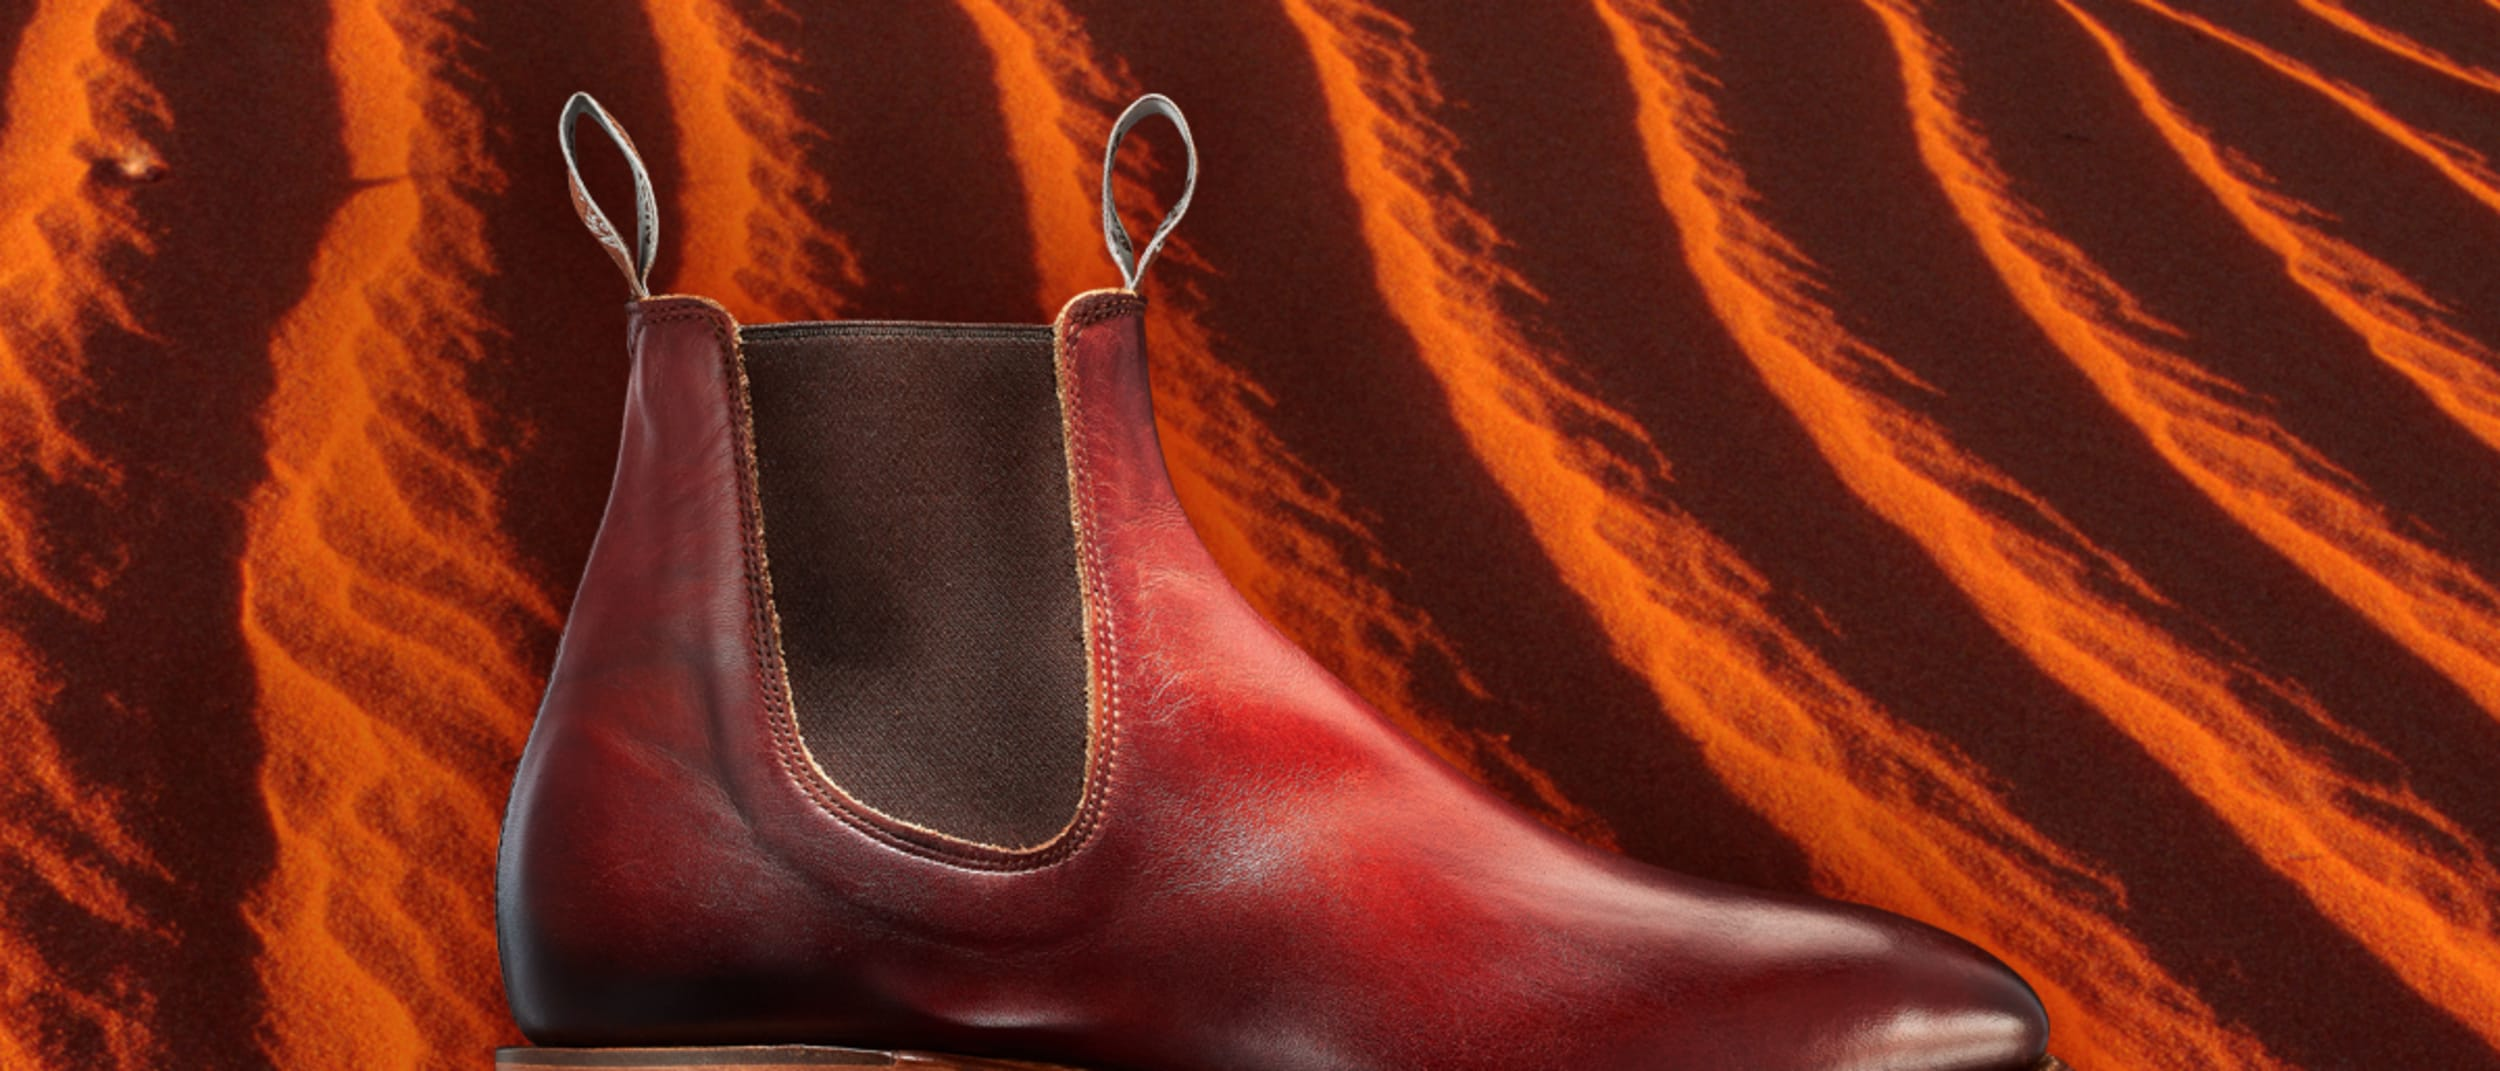 R. M. Williams: Crafted by hand, inspired by the land.